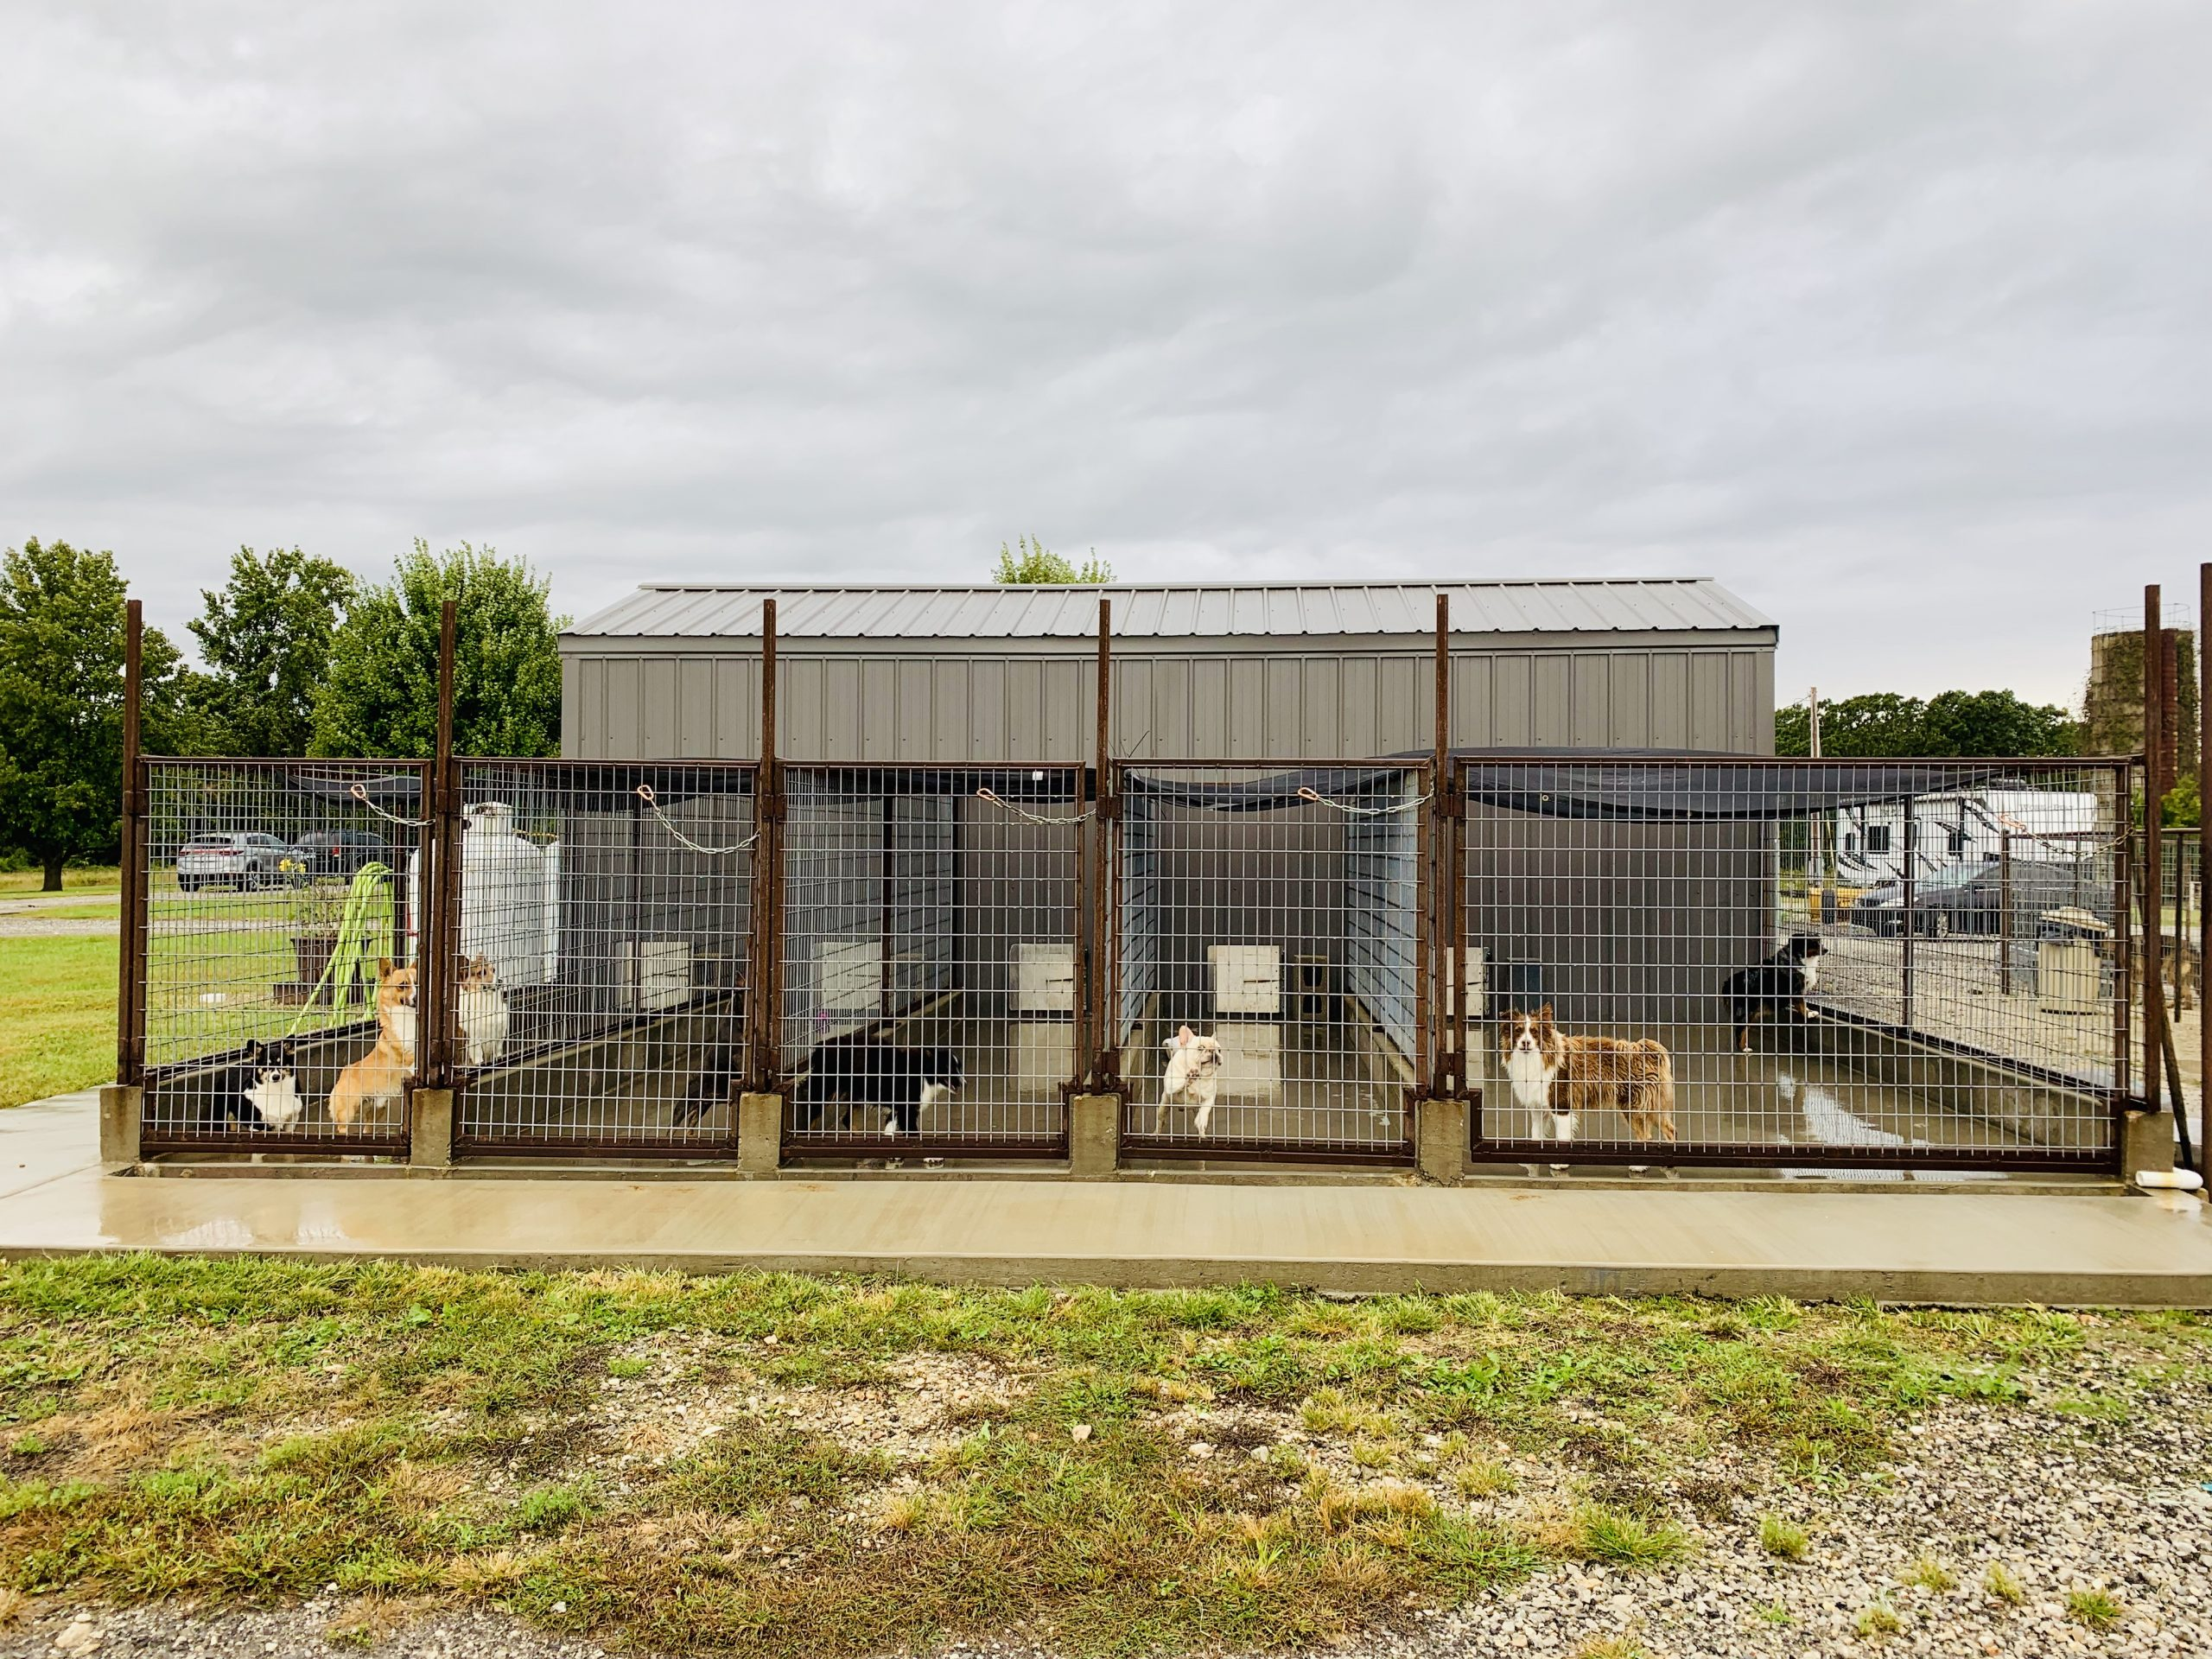 Outside look at kennels